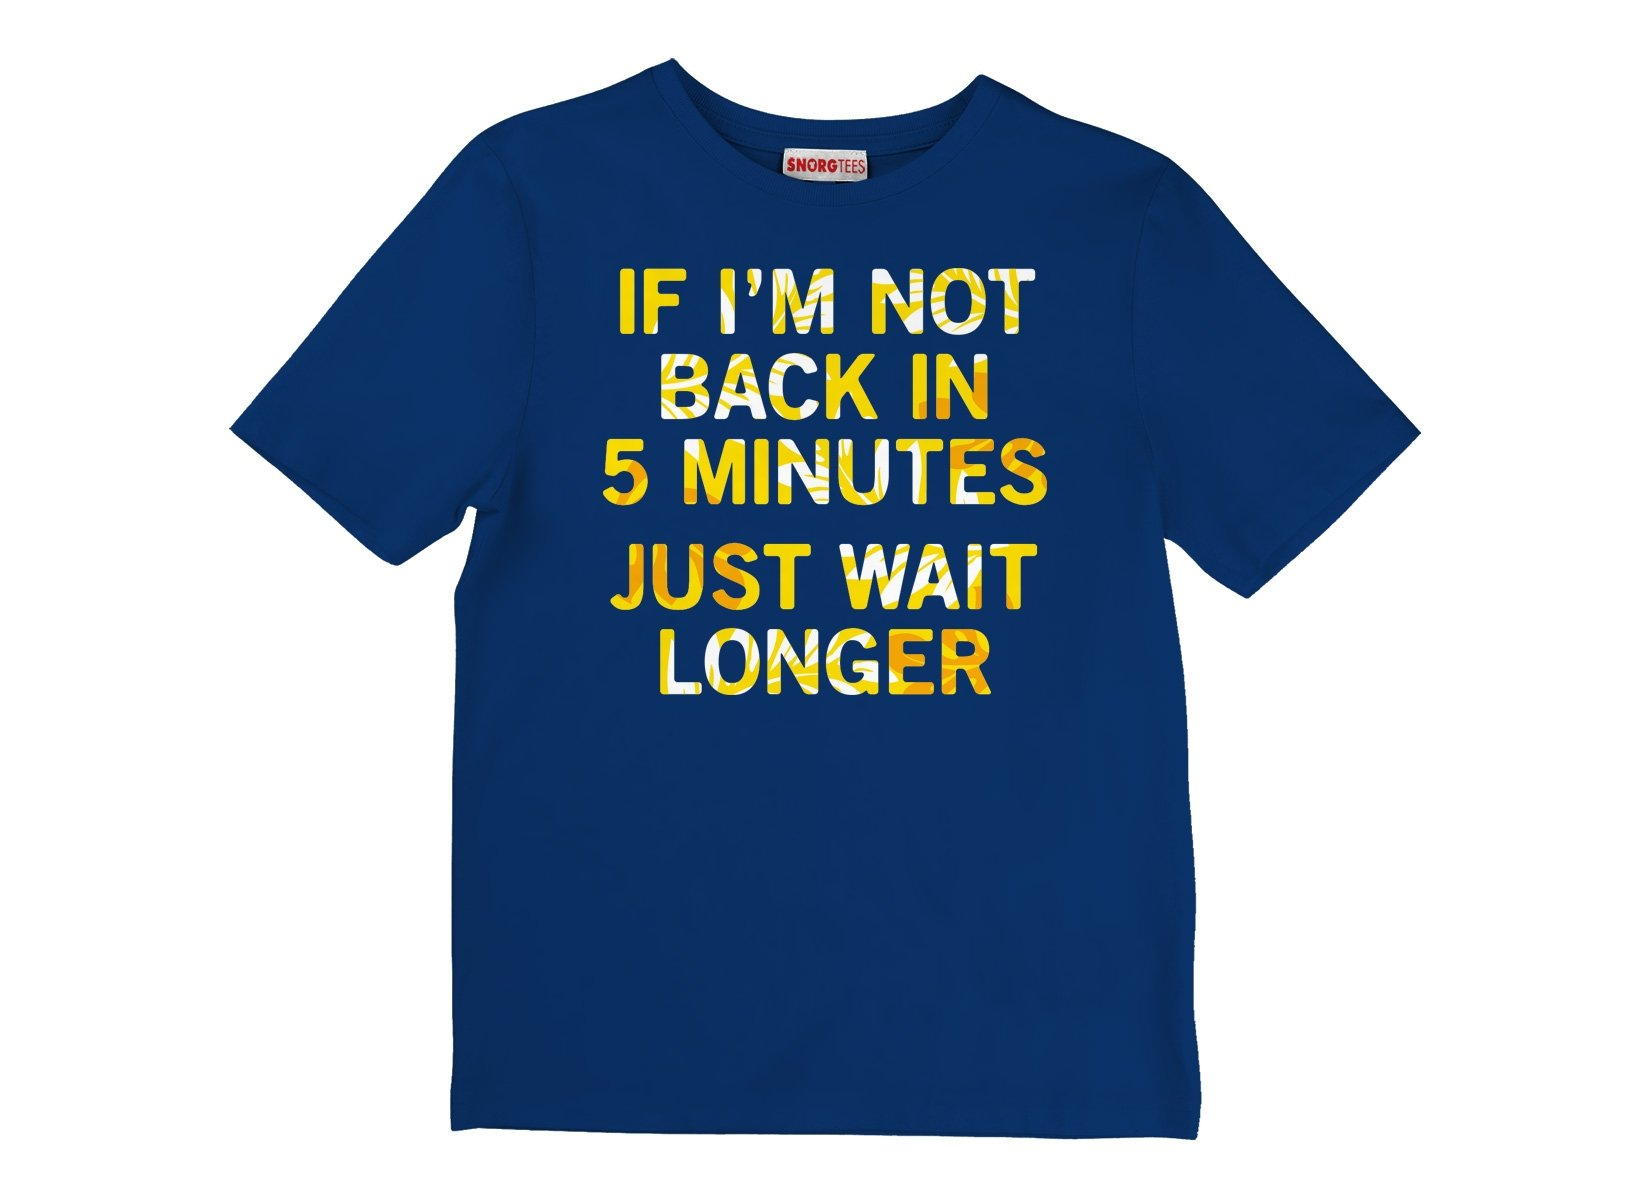 If I'm Not Back In 5 Minutes, Just Wait Longer on Kids T-Shirt